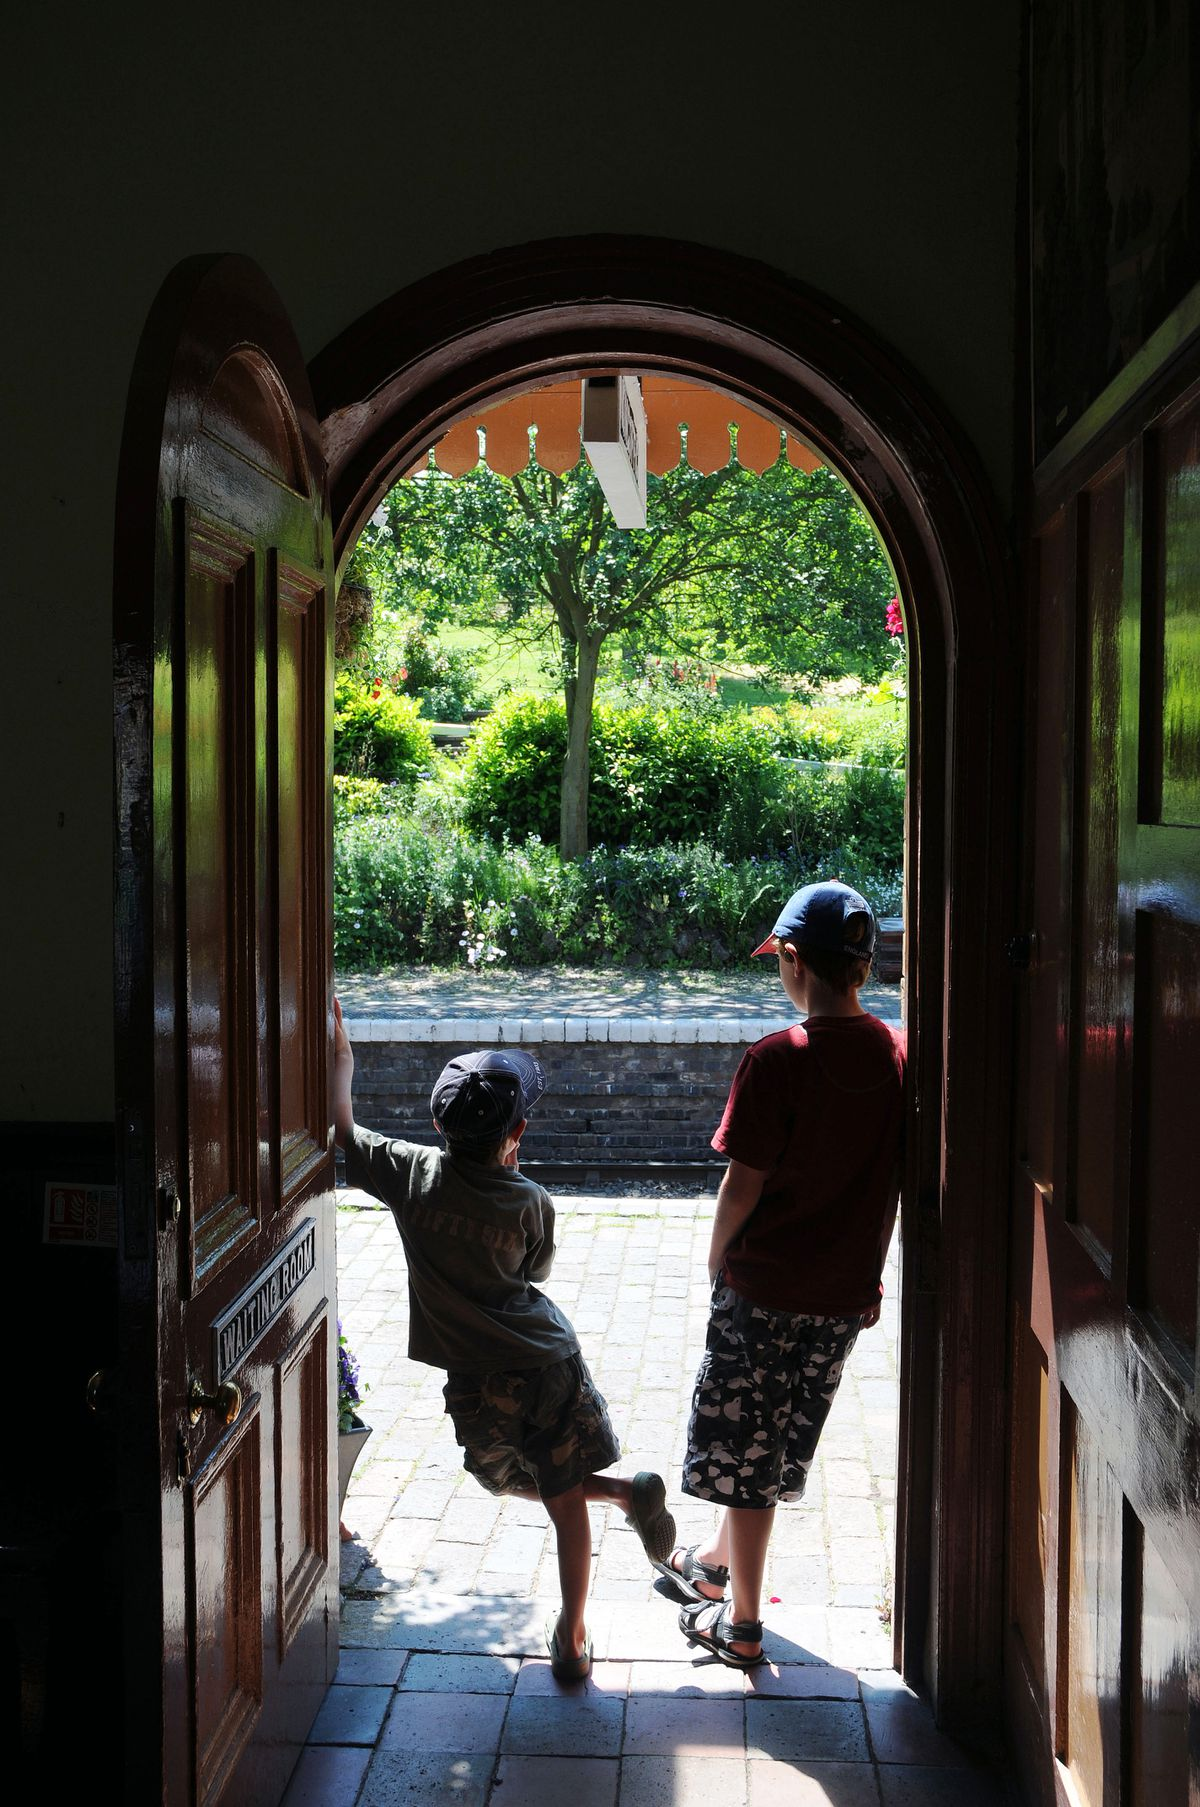 Two lads at the door of the waiting room at Arley Station Worcestershire on the Severn Valley Railway.